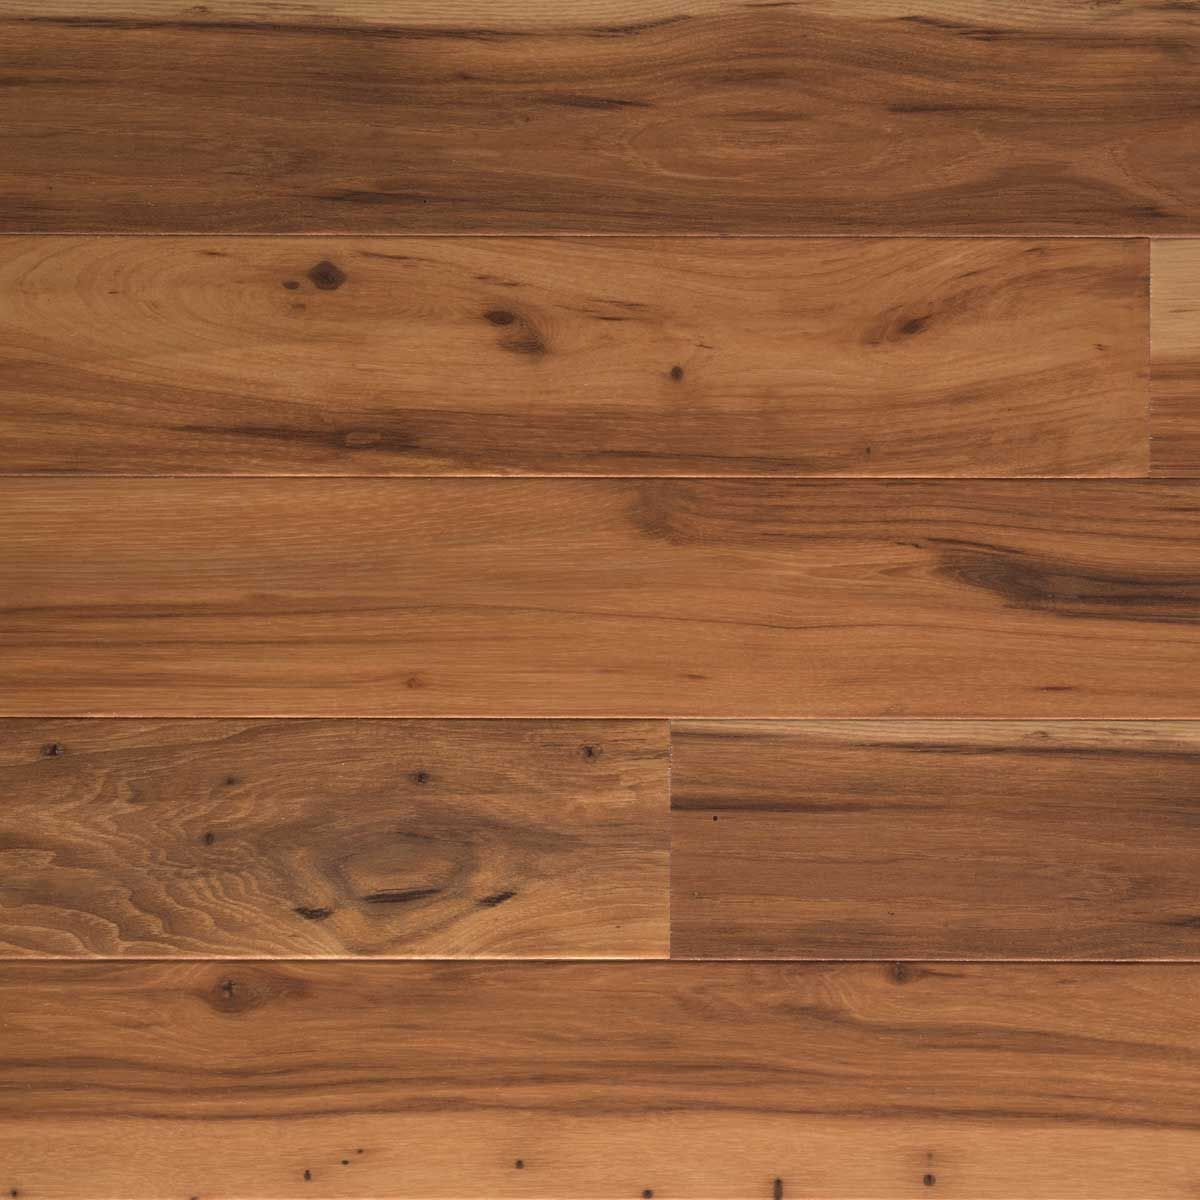 Aged Cork Hickory Planks Veresque 174 Collection Laminate